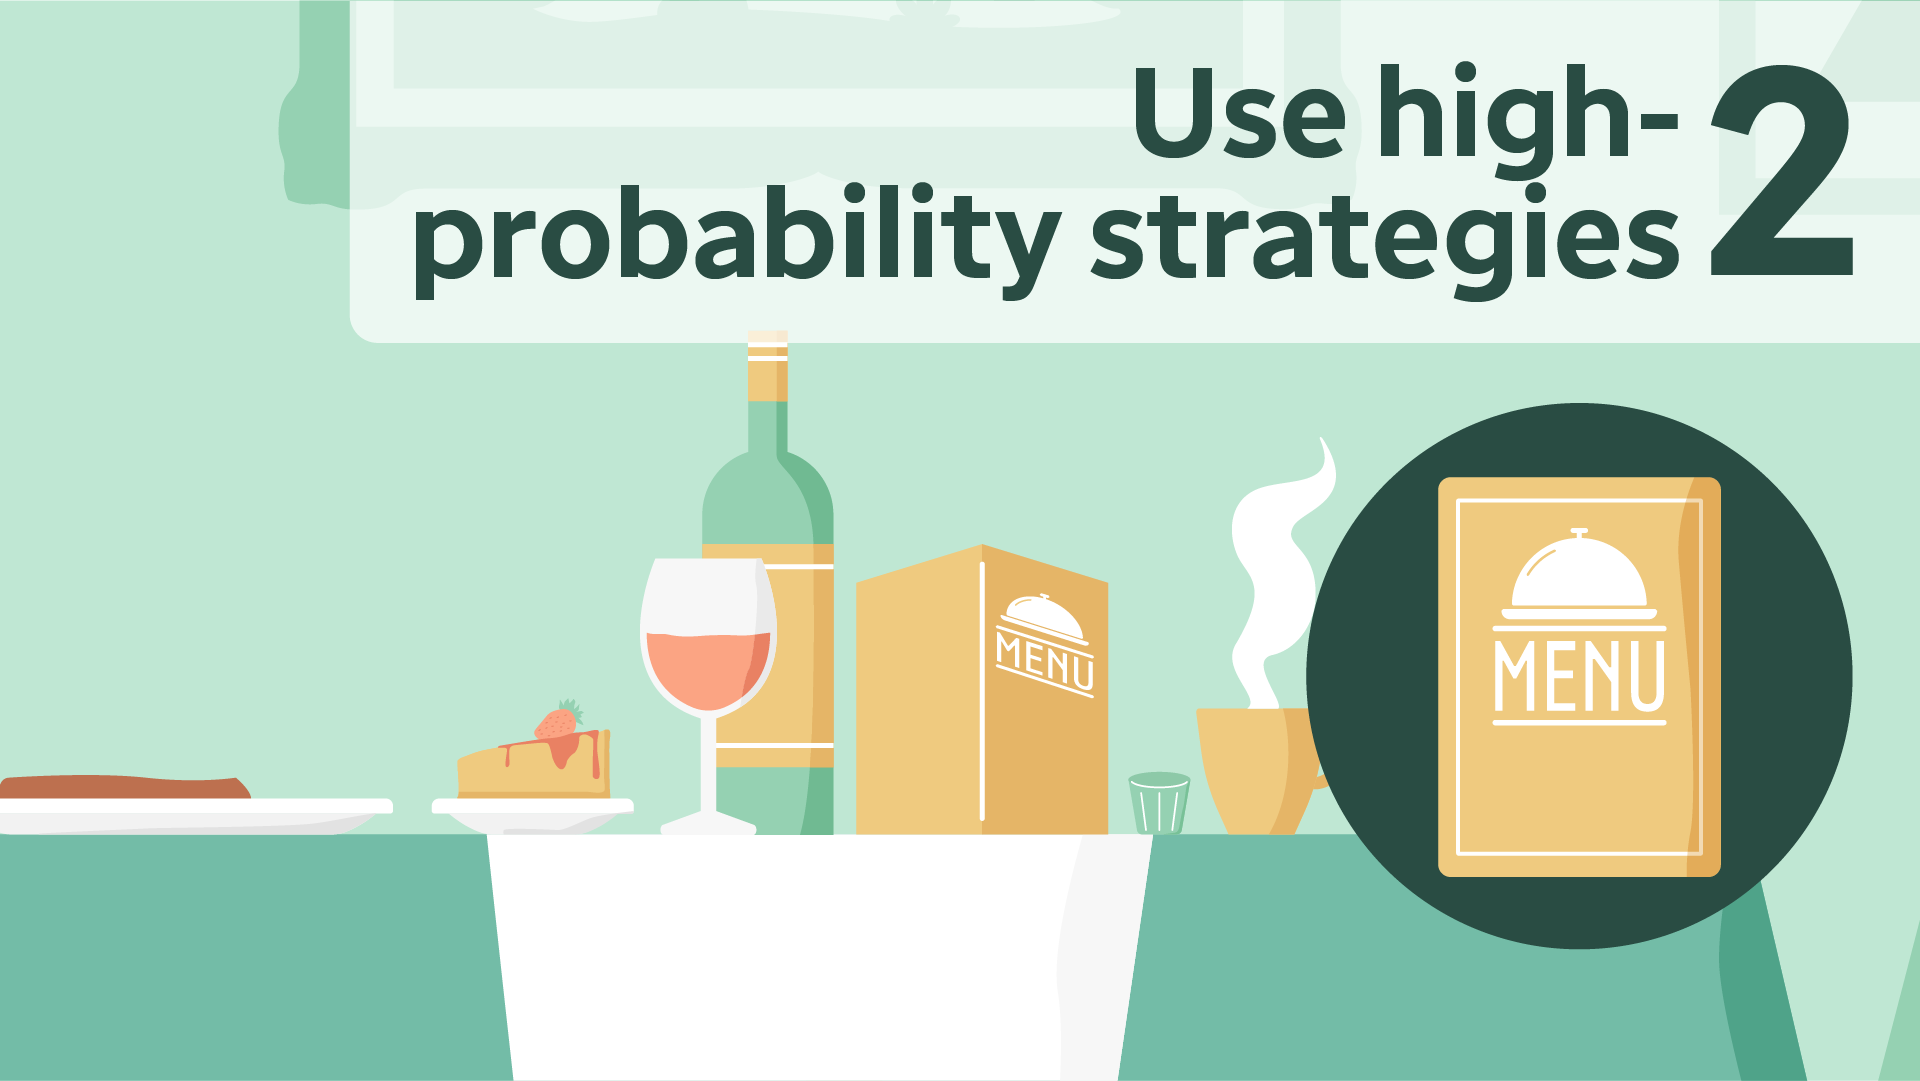 Use high-probability strategies